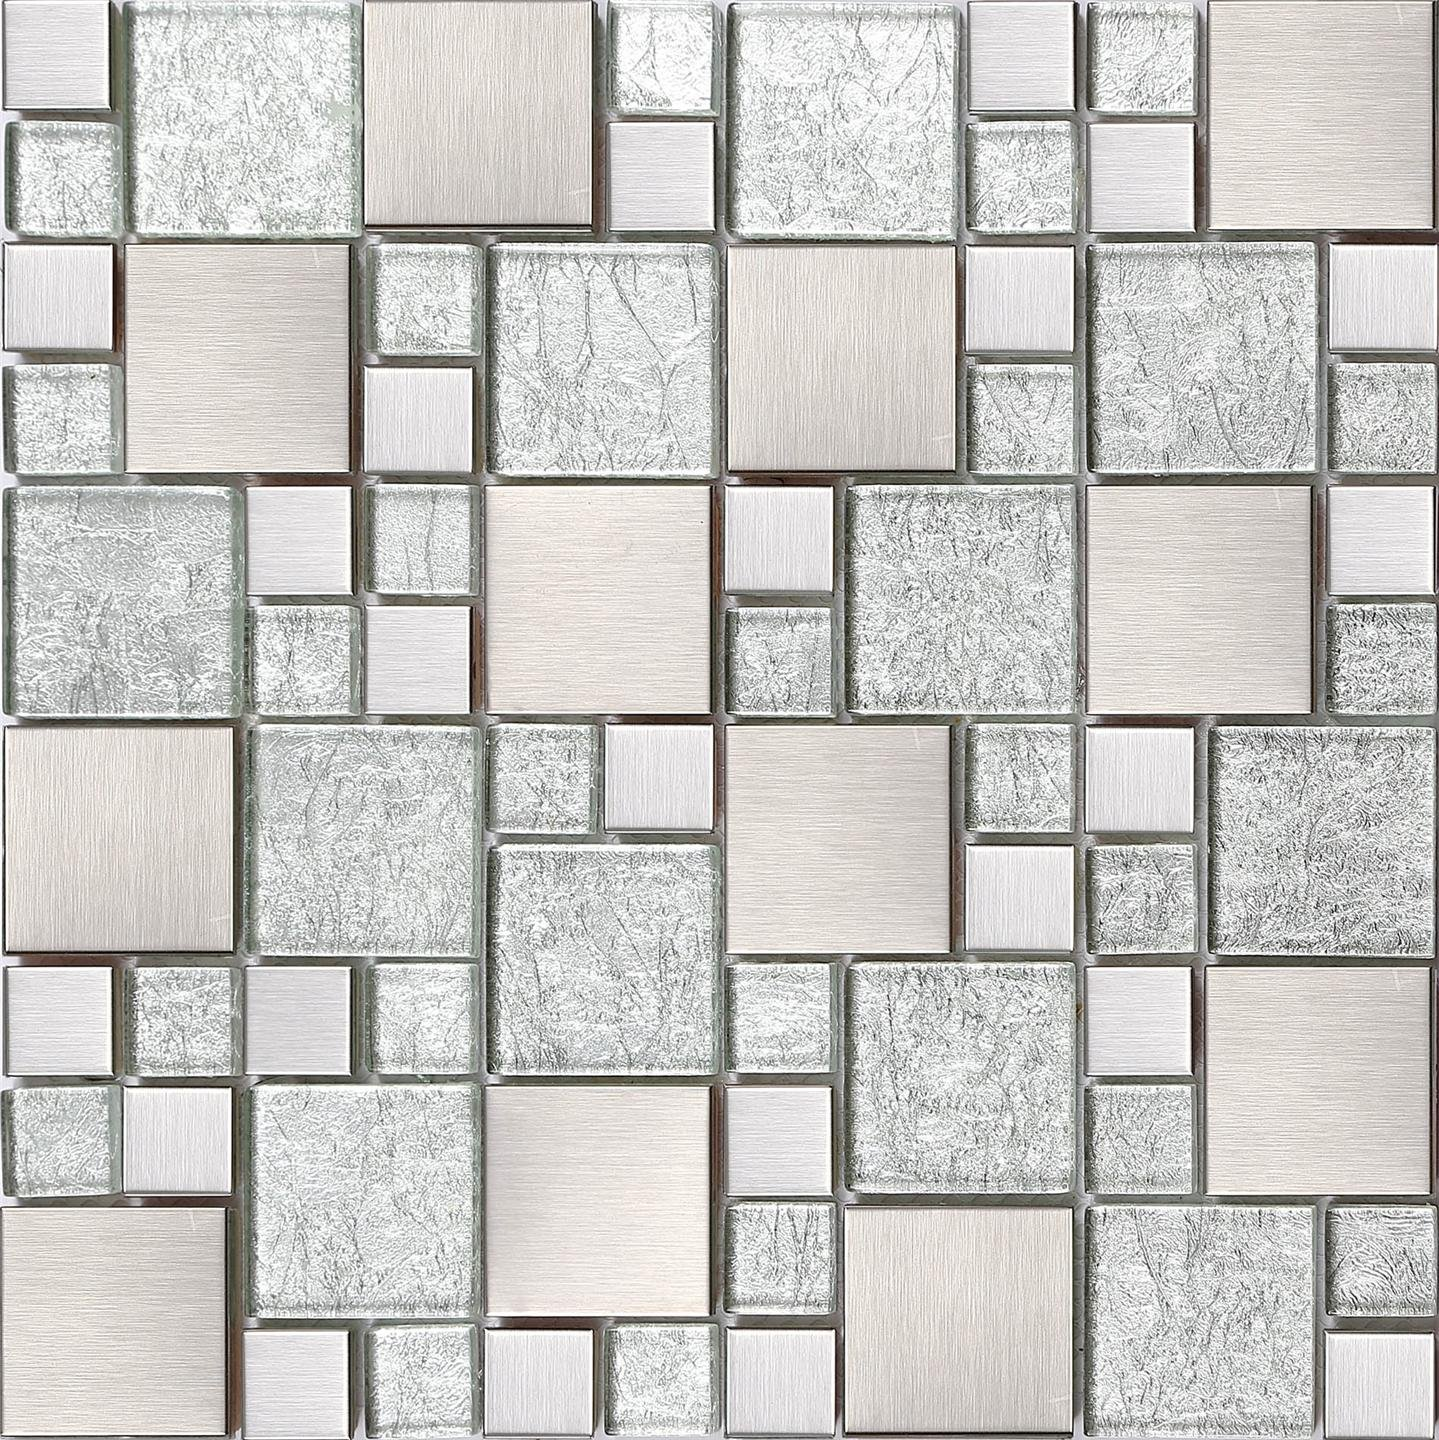 Glass and Stainless Steel Mosaic Tiles, Matte Silver with Stones, Brushed, with Asian Design, MT0048 GTDE